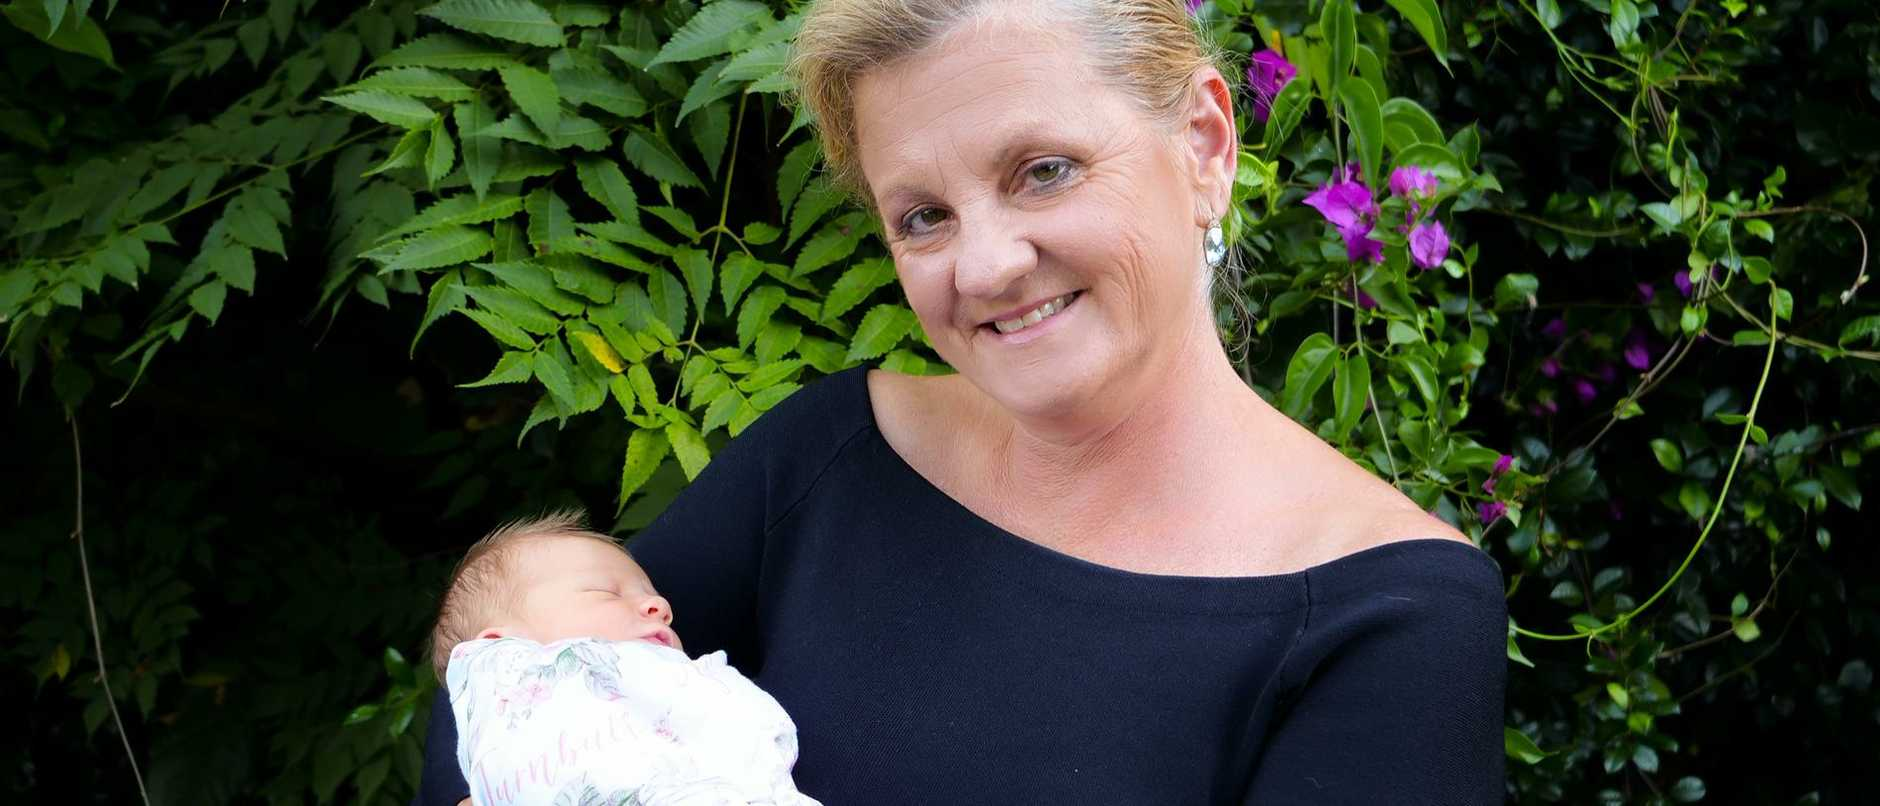 Redlands Mayor Karen Williams with new granddaughter Rose.